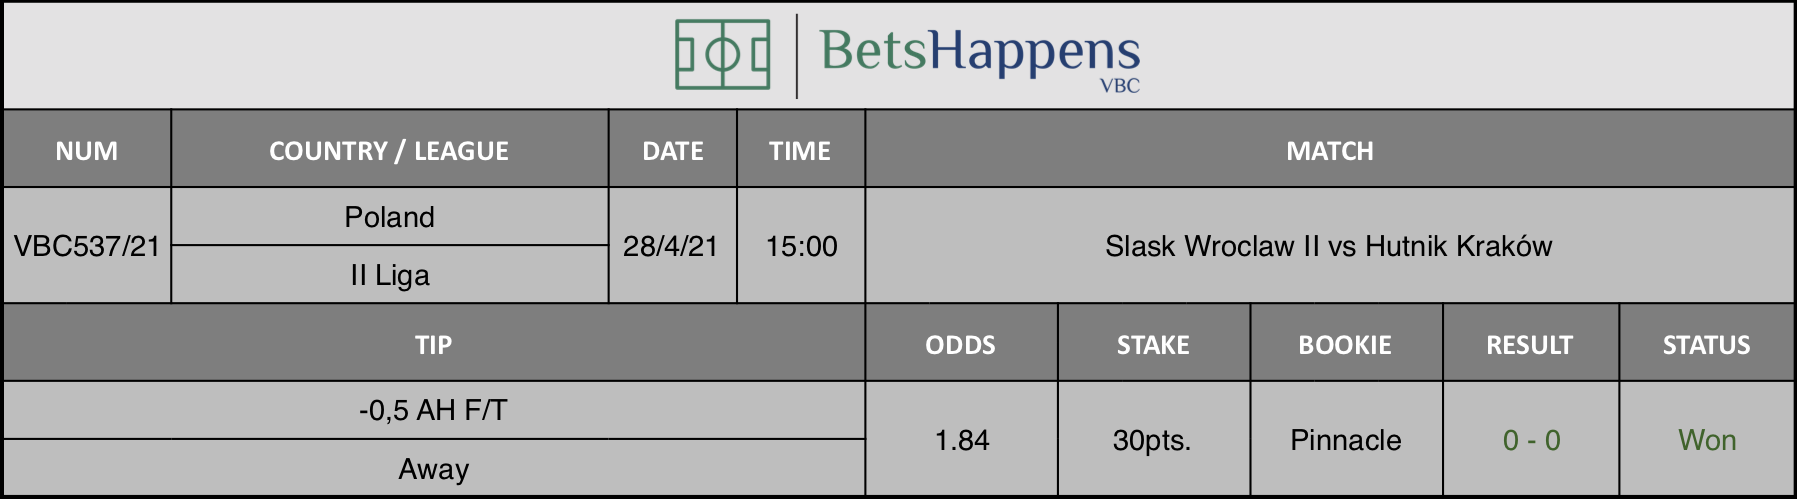 Results of our tip for the Slask Wroclaw II vs Hutnik Kraków  match where -0,5 AH F/T Away is recommended.